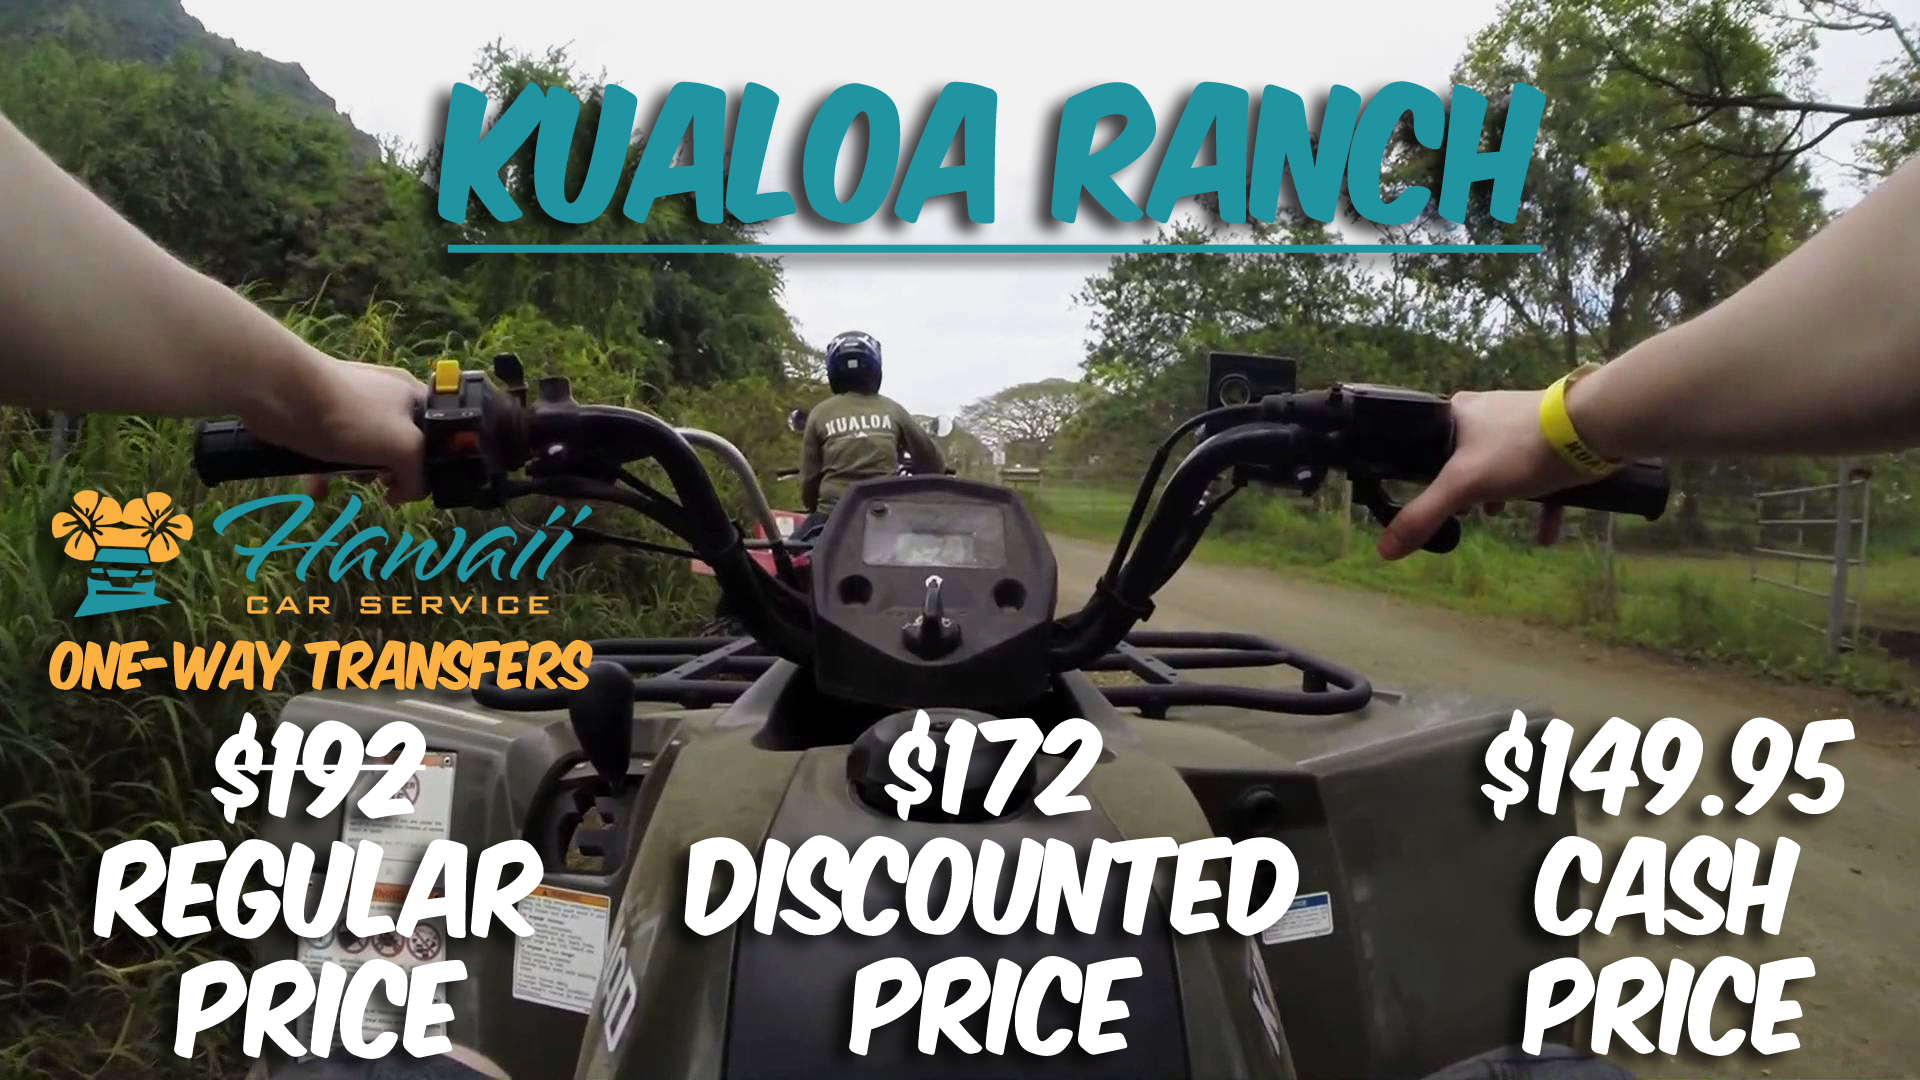 Kualoa Ranch Transportation Service